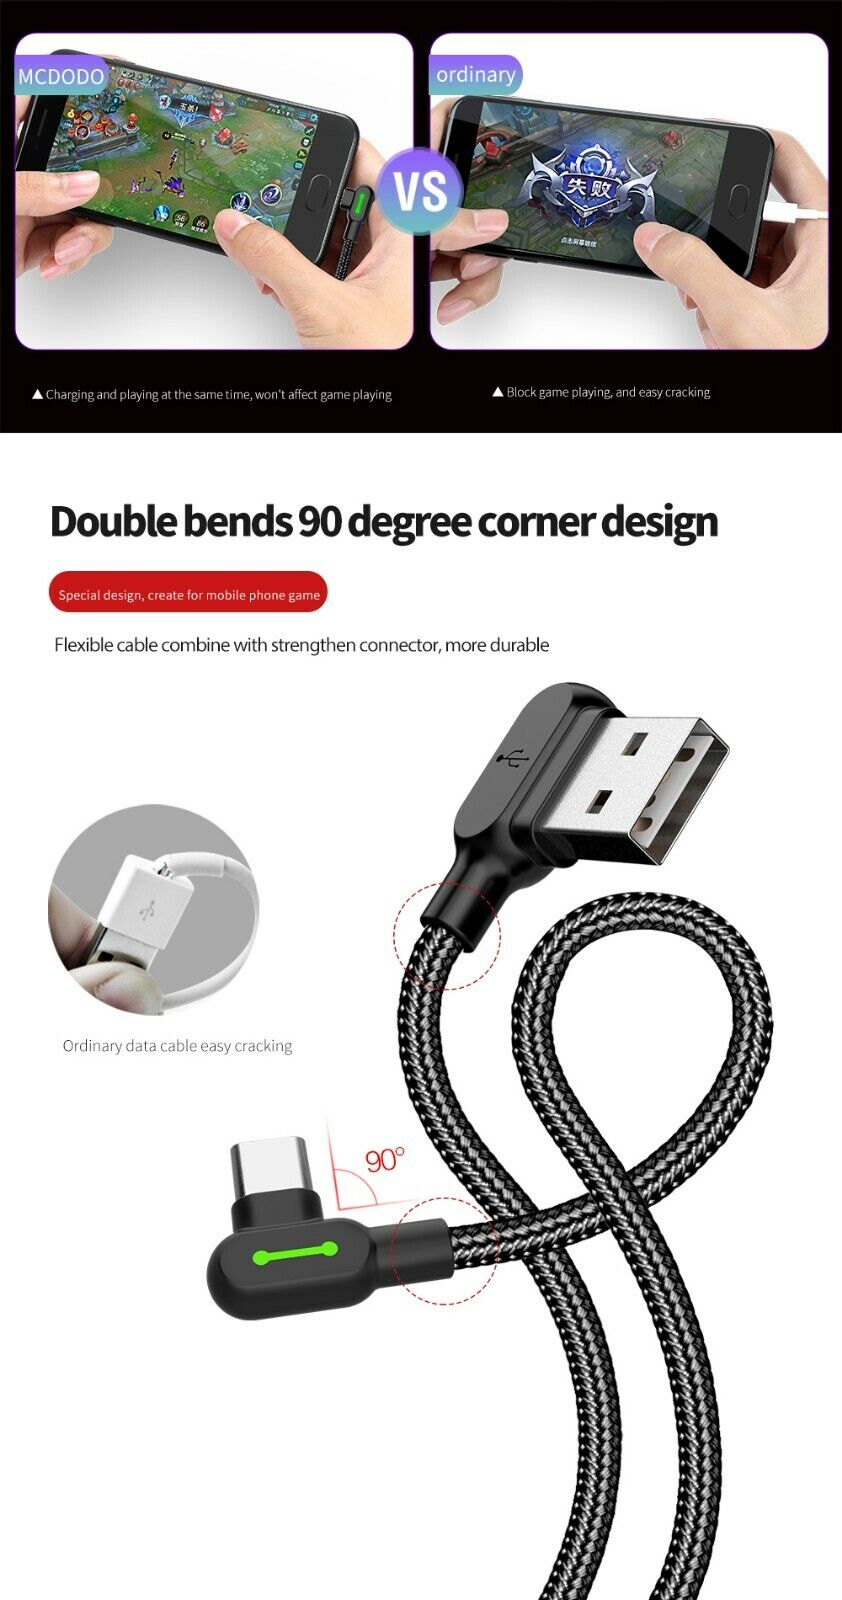 Samsung USB-C Type C Fast Charging Cable Galaxy Note 10 S8 S9 S10 Plus Note 8 9 - $8.99